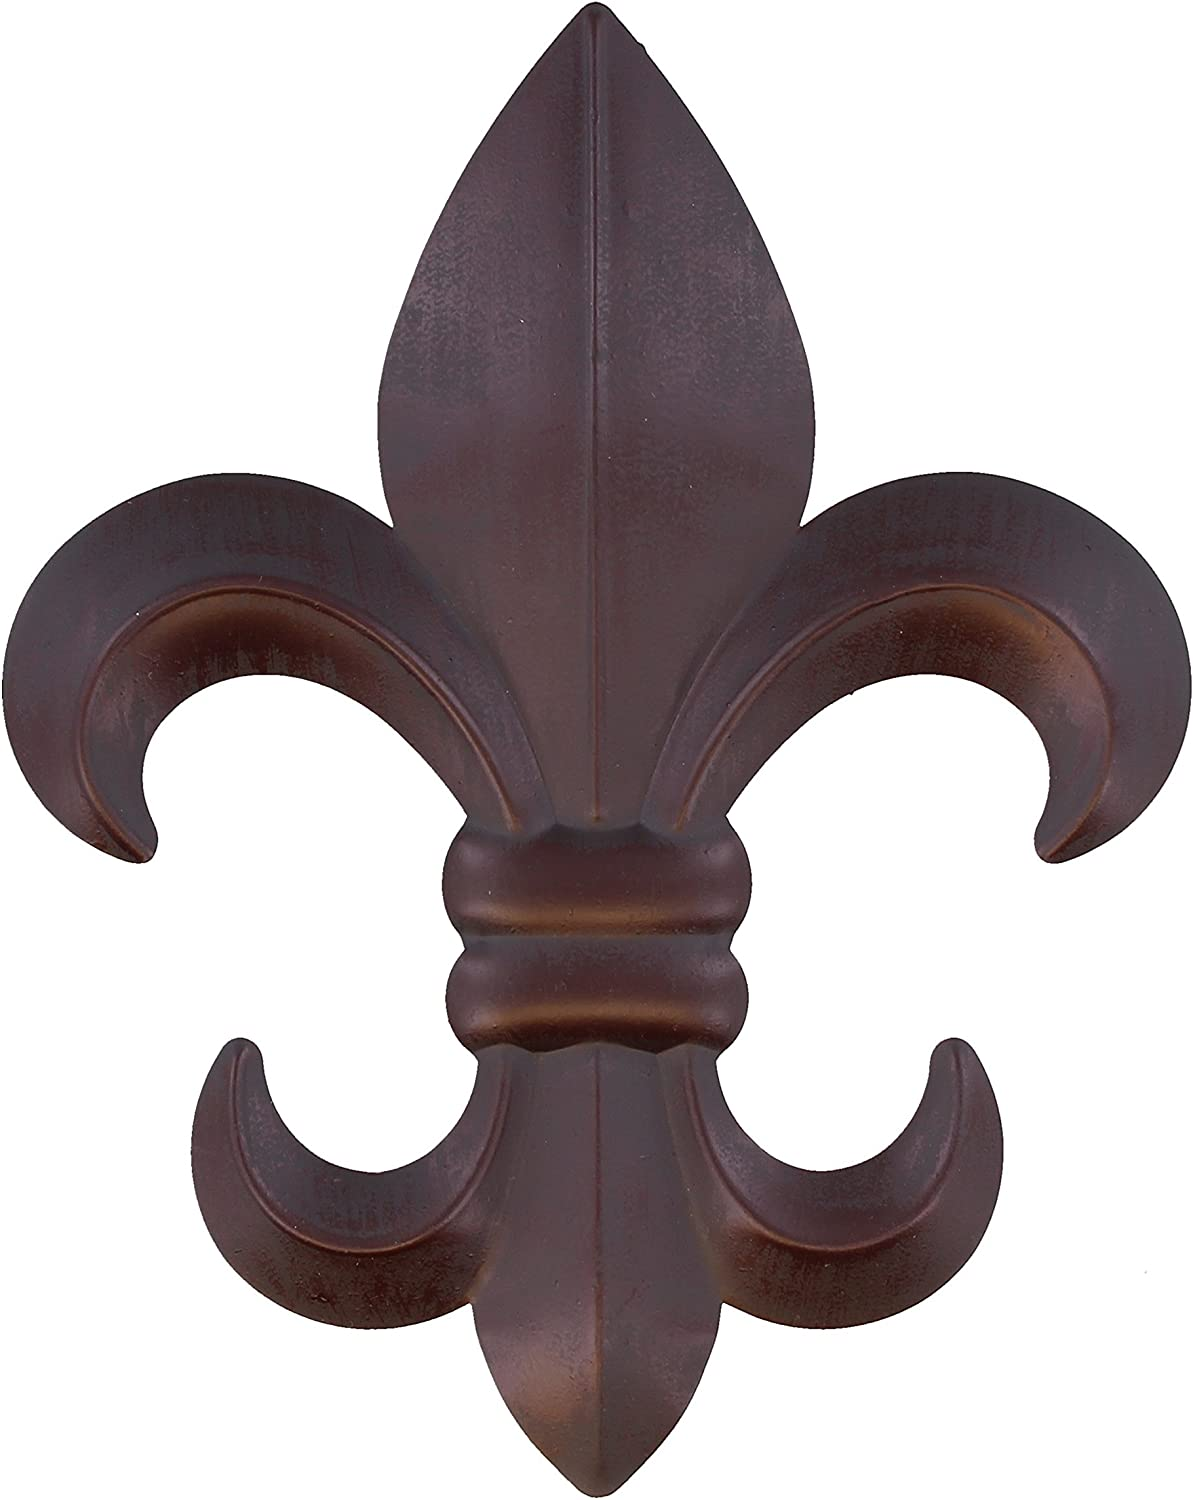 "10"" Metal Fleur De Lis Wall Plaque / Art with hanger - Rustic Creole Decor"